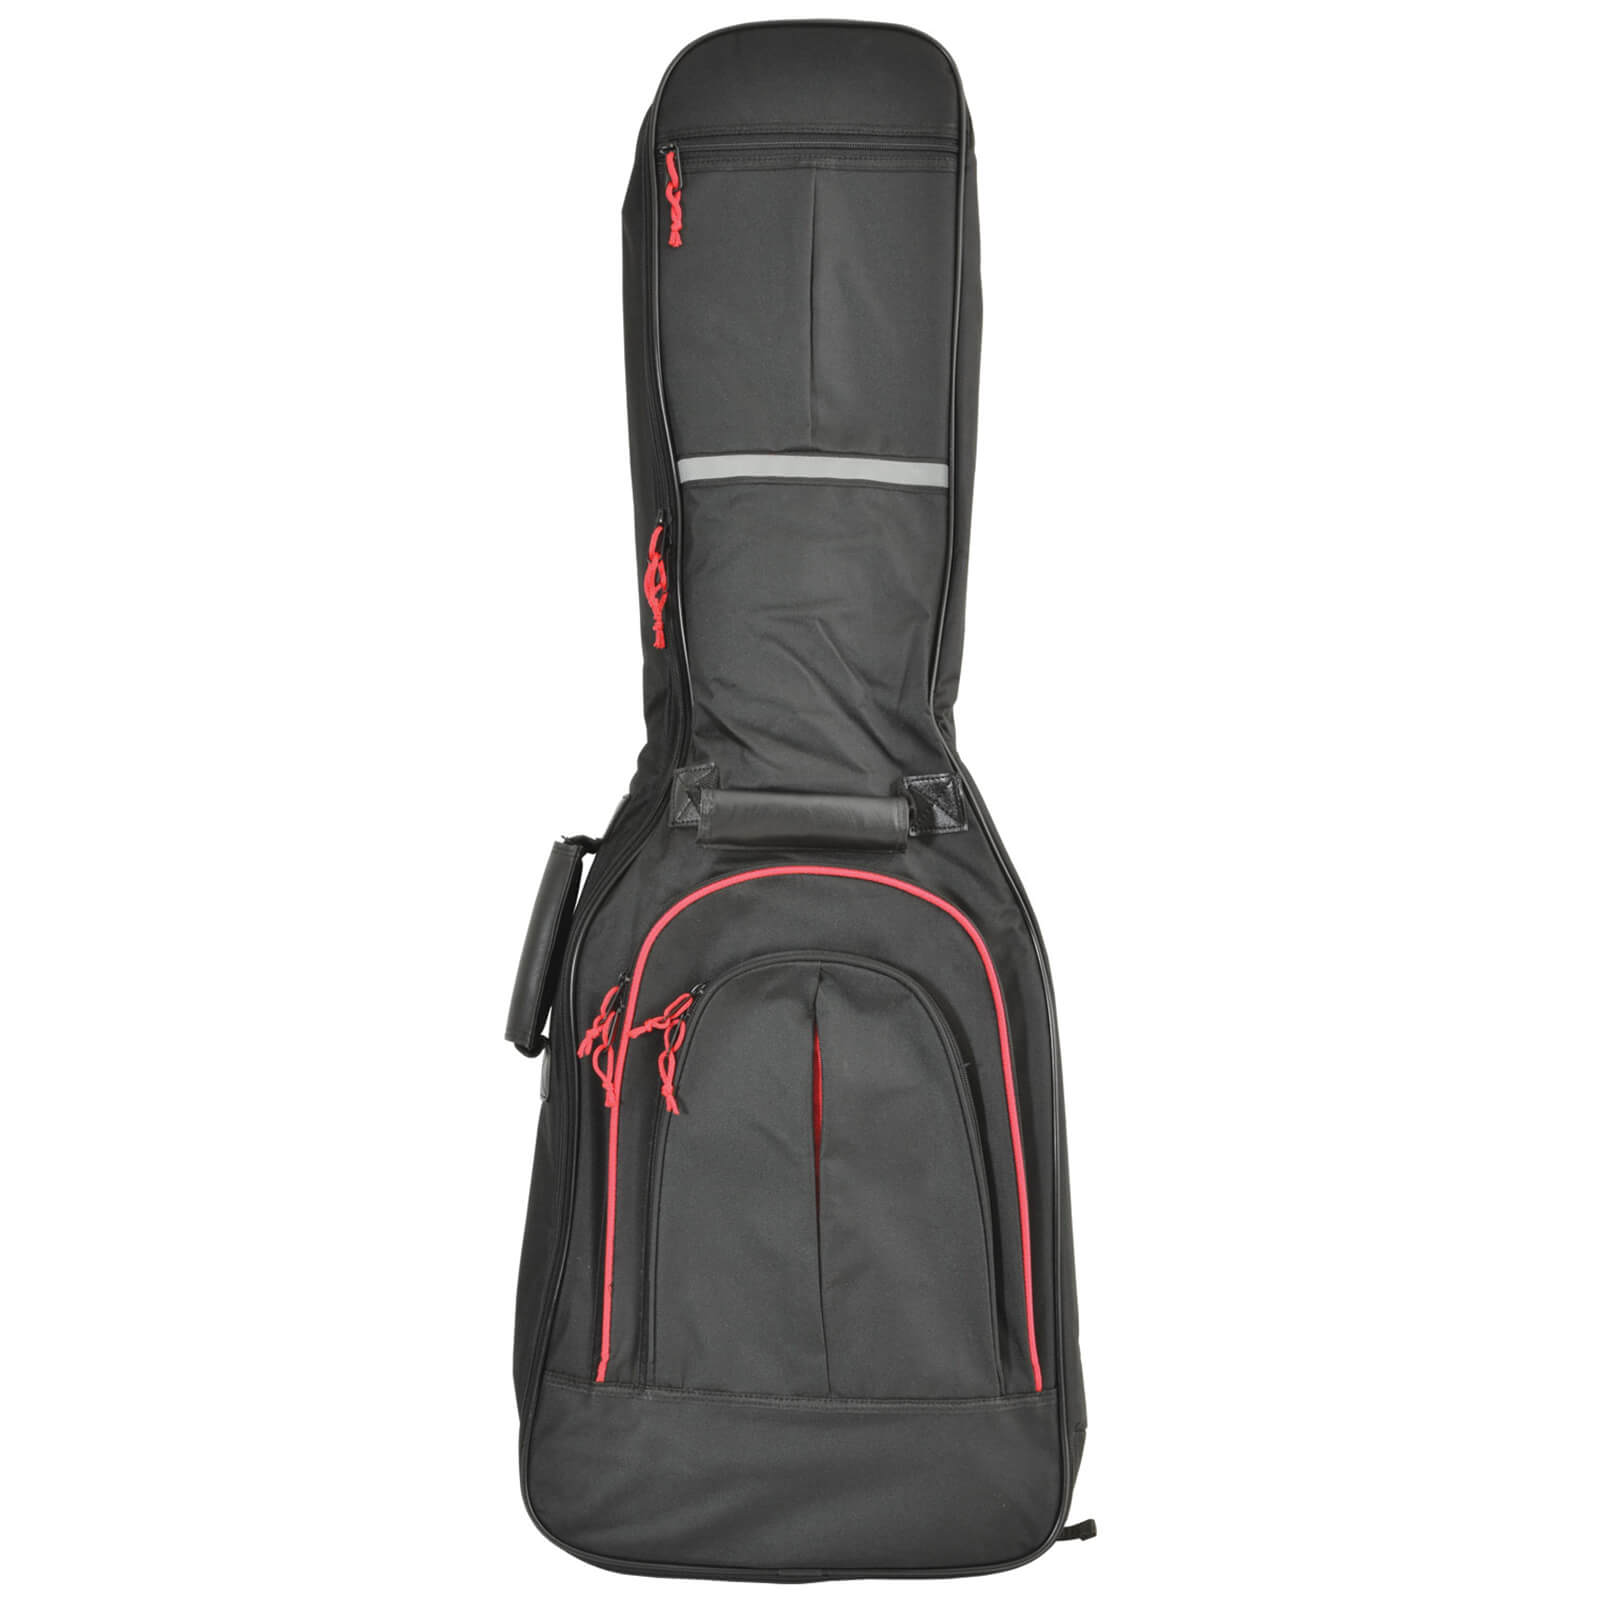 Chord GB-ED1 Deluxe Soft Padded Electric Guitar Gig Bag - Black